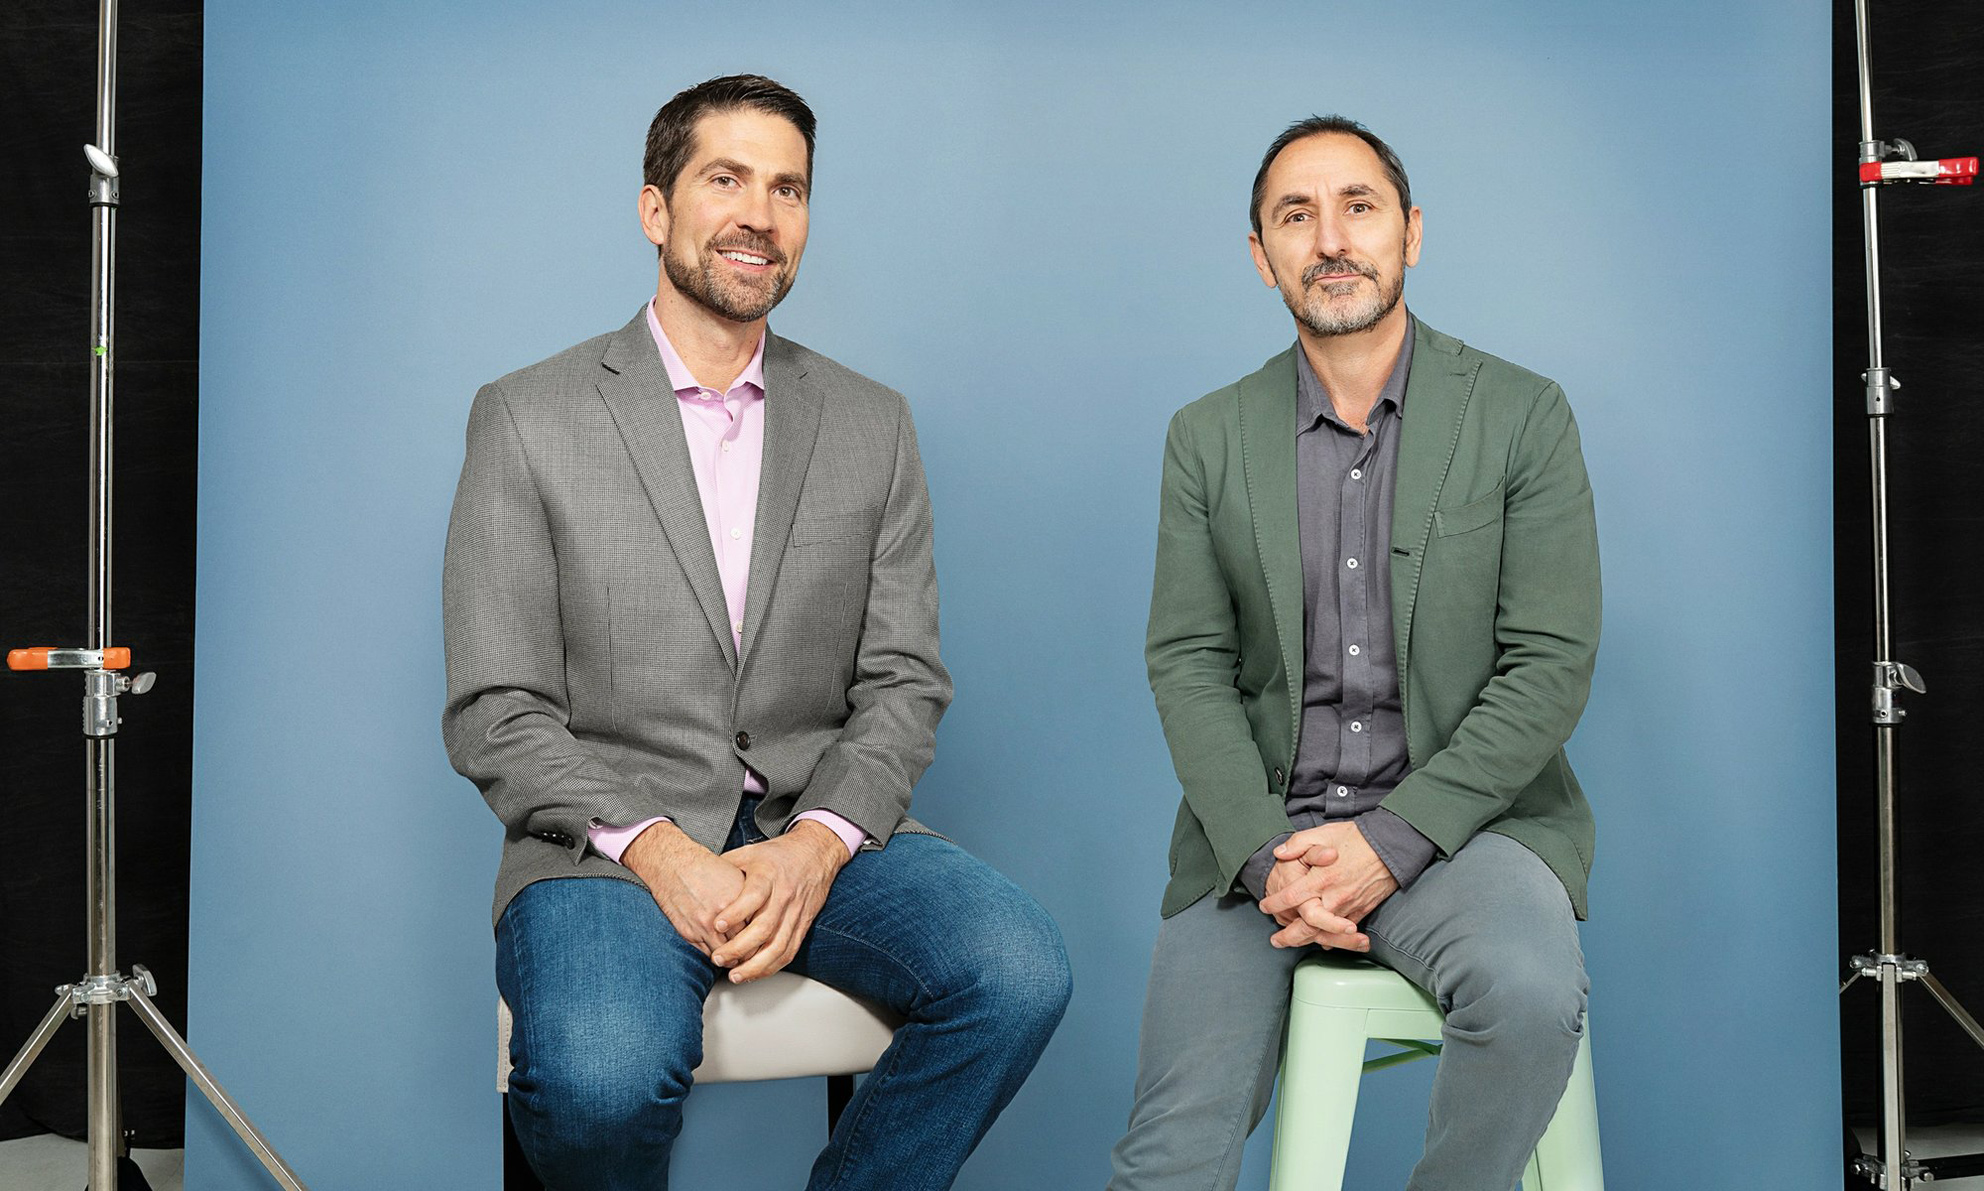 Fast Company analysis: Why Accenture Interactive buying Droga5 is such a big deal